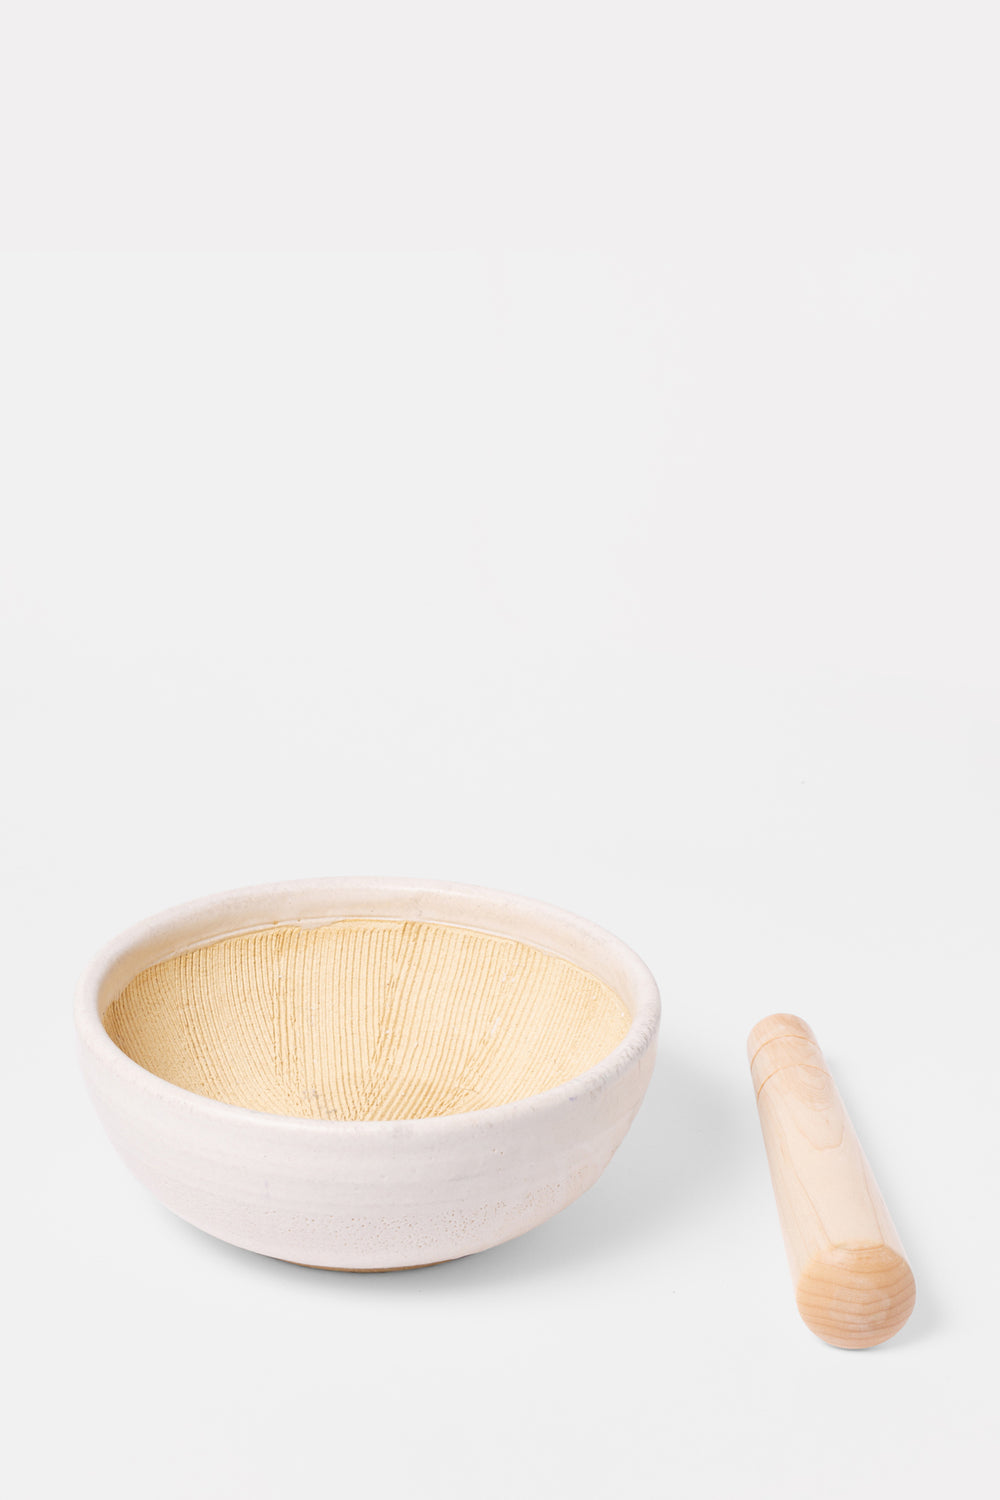 ALICE'S MORTAR AND PESTLE